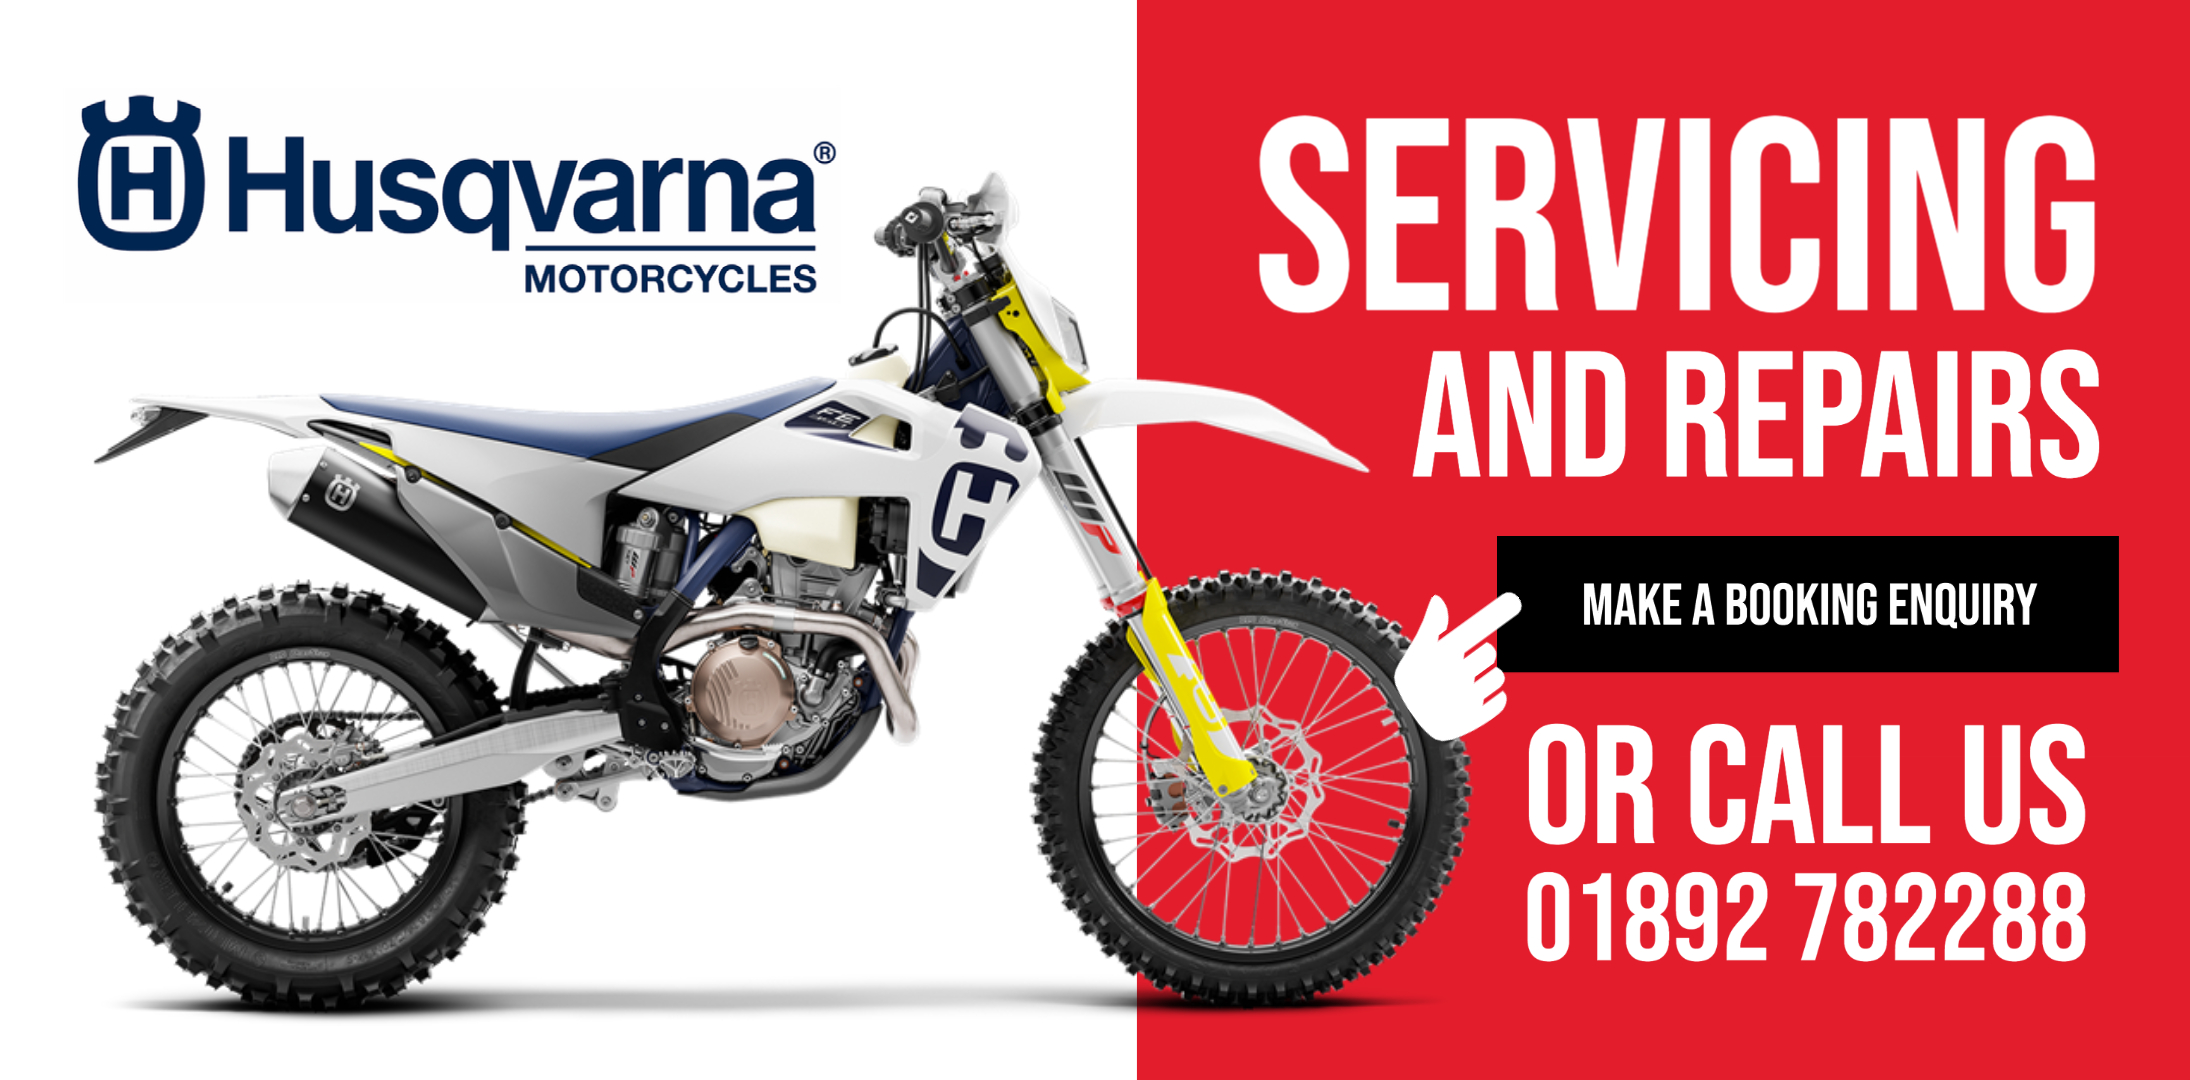 Husqvarna Motorcycle Servicing